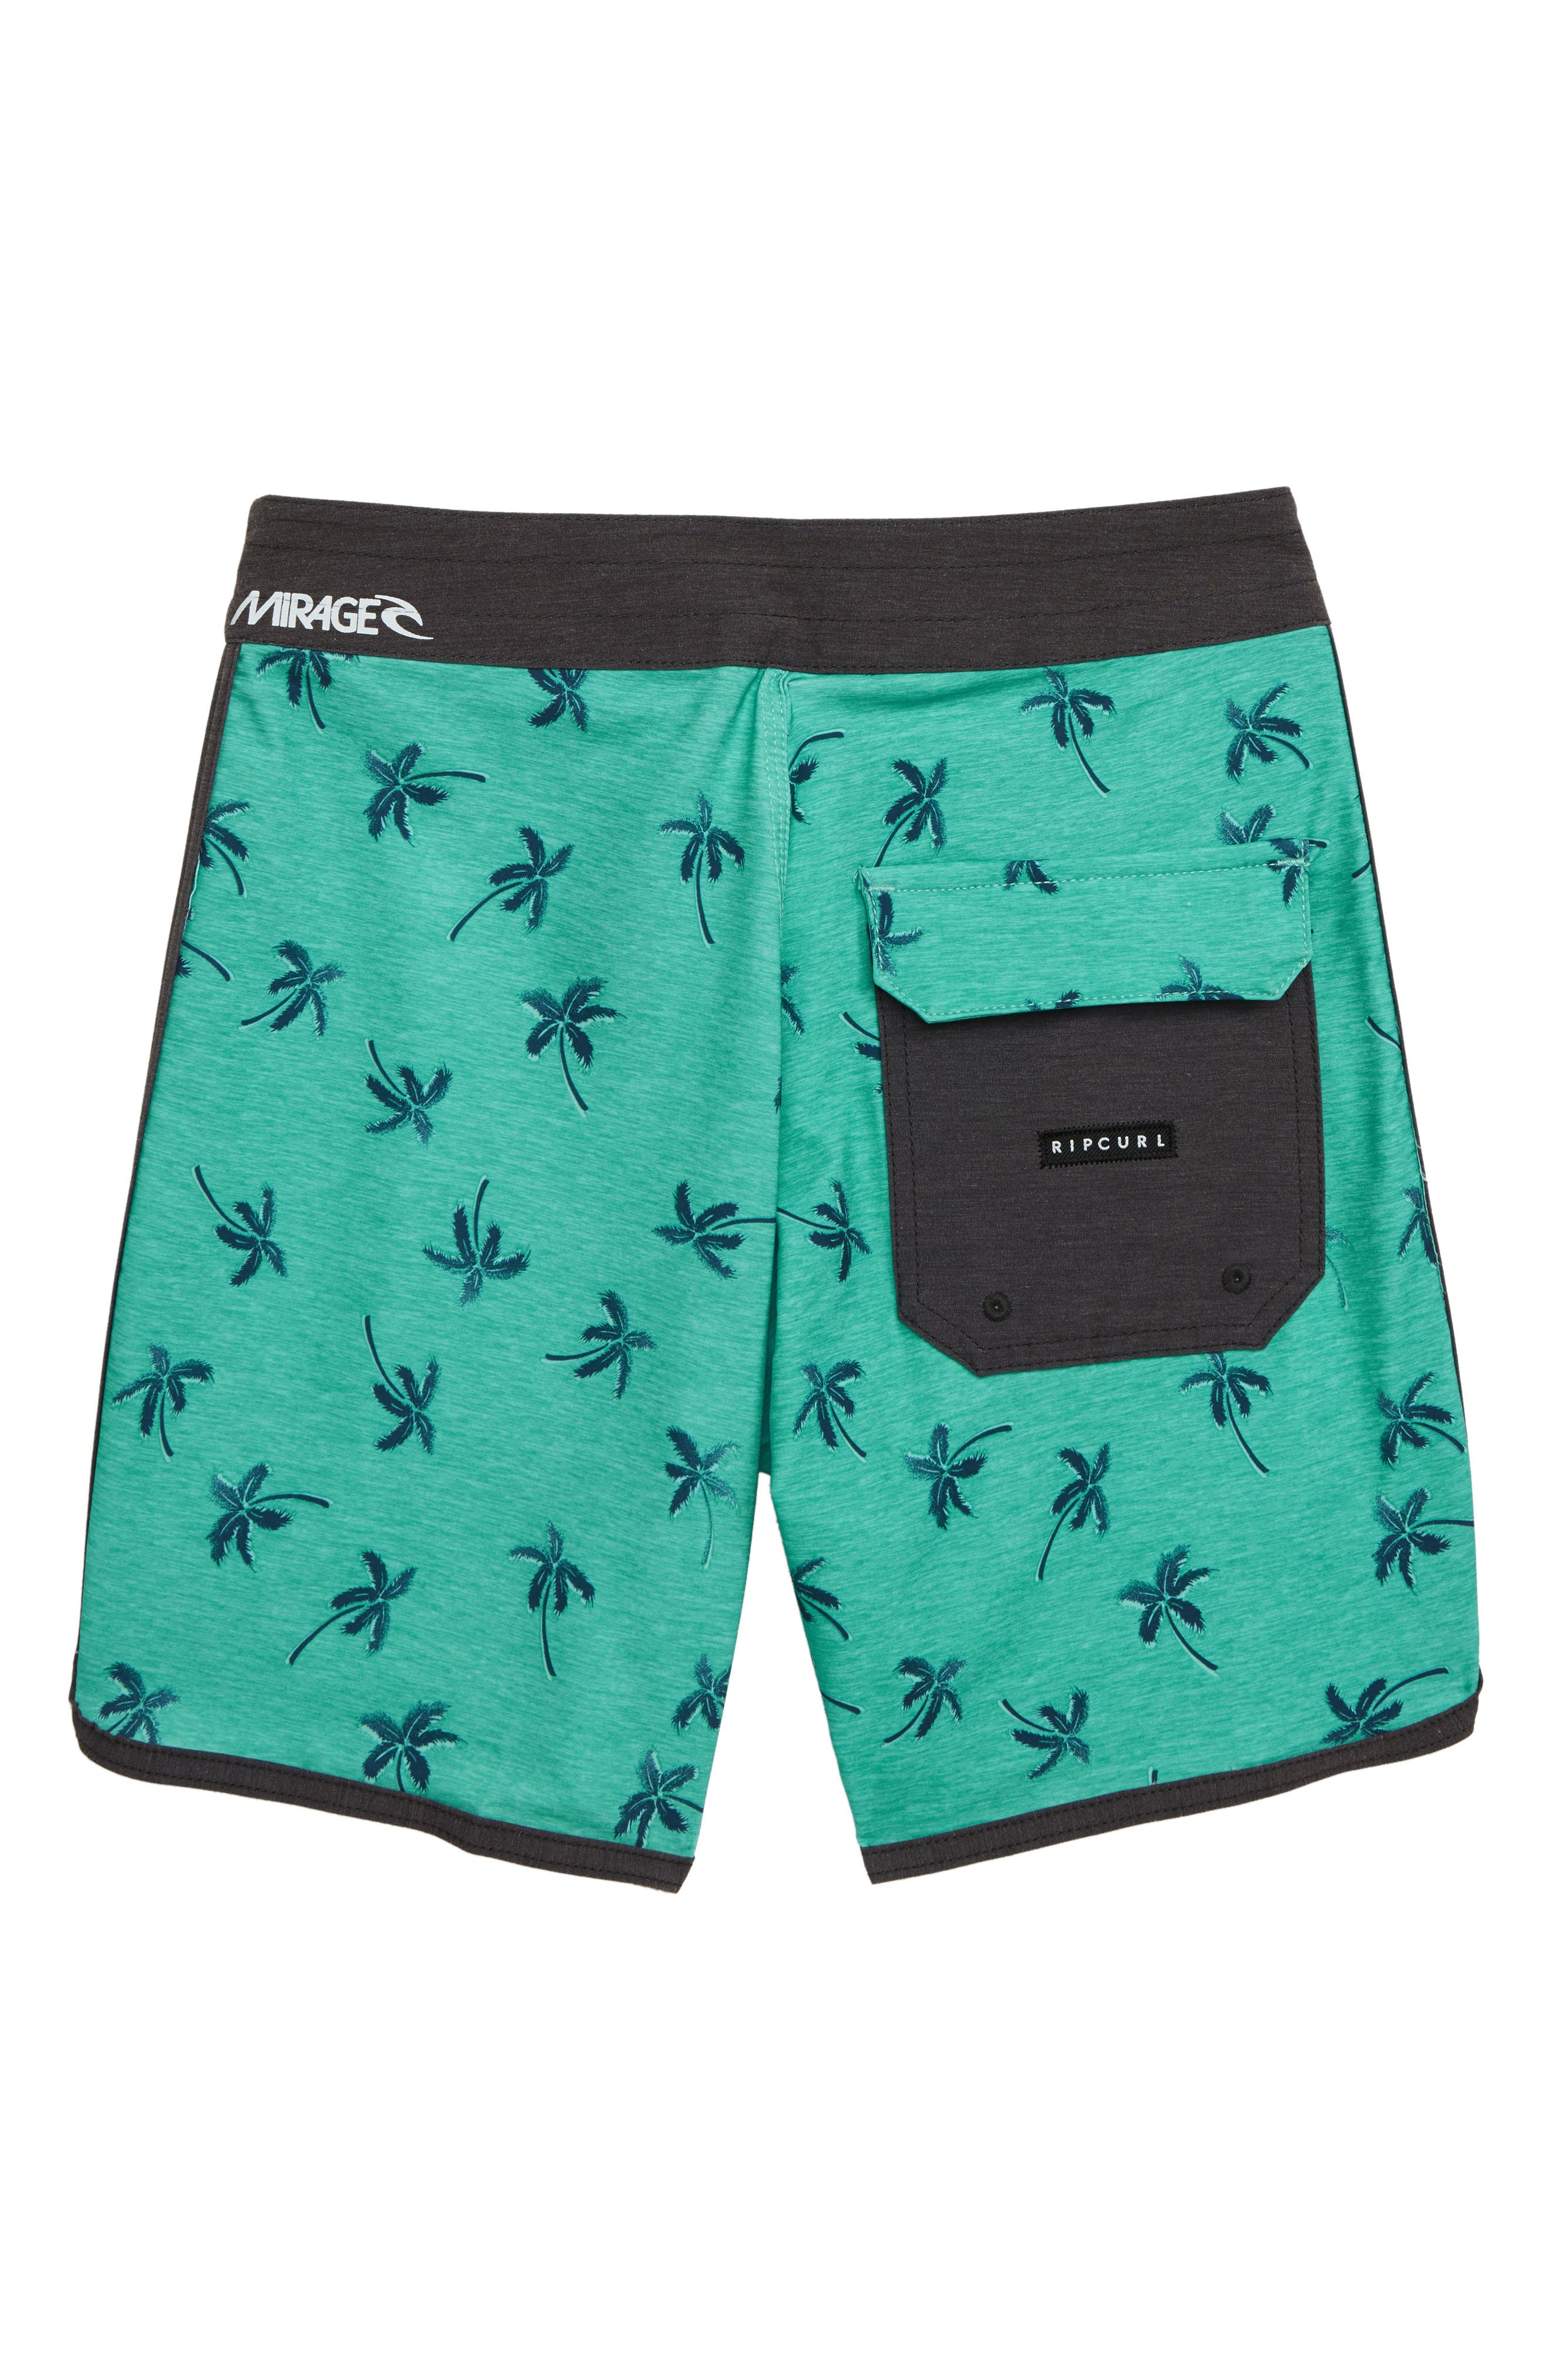 RIP CURL,                             Mirage Motion Board Shorts,                             Alternate thumbnail 2, color,                             439